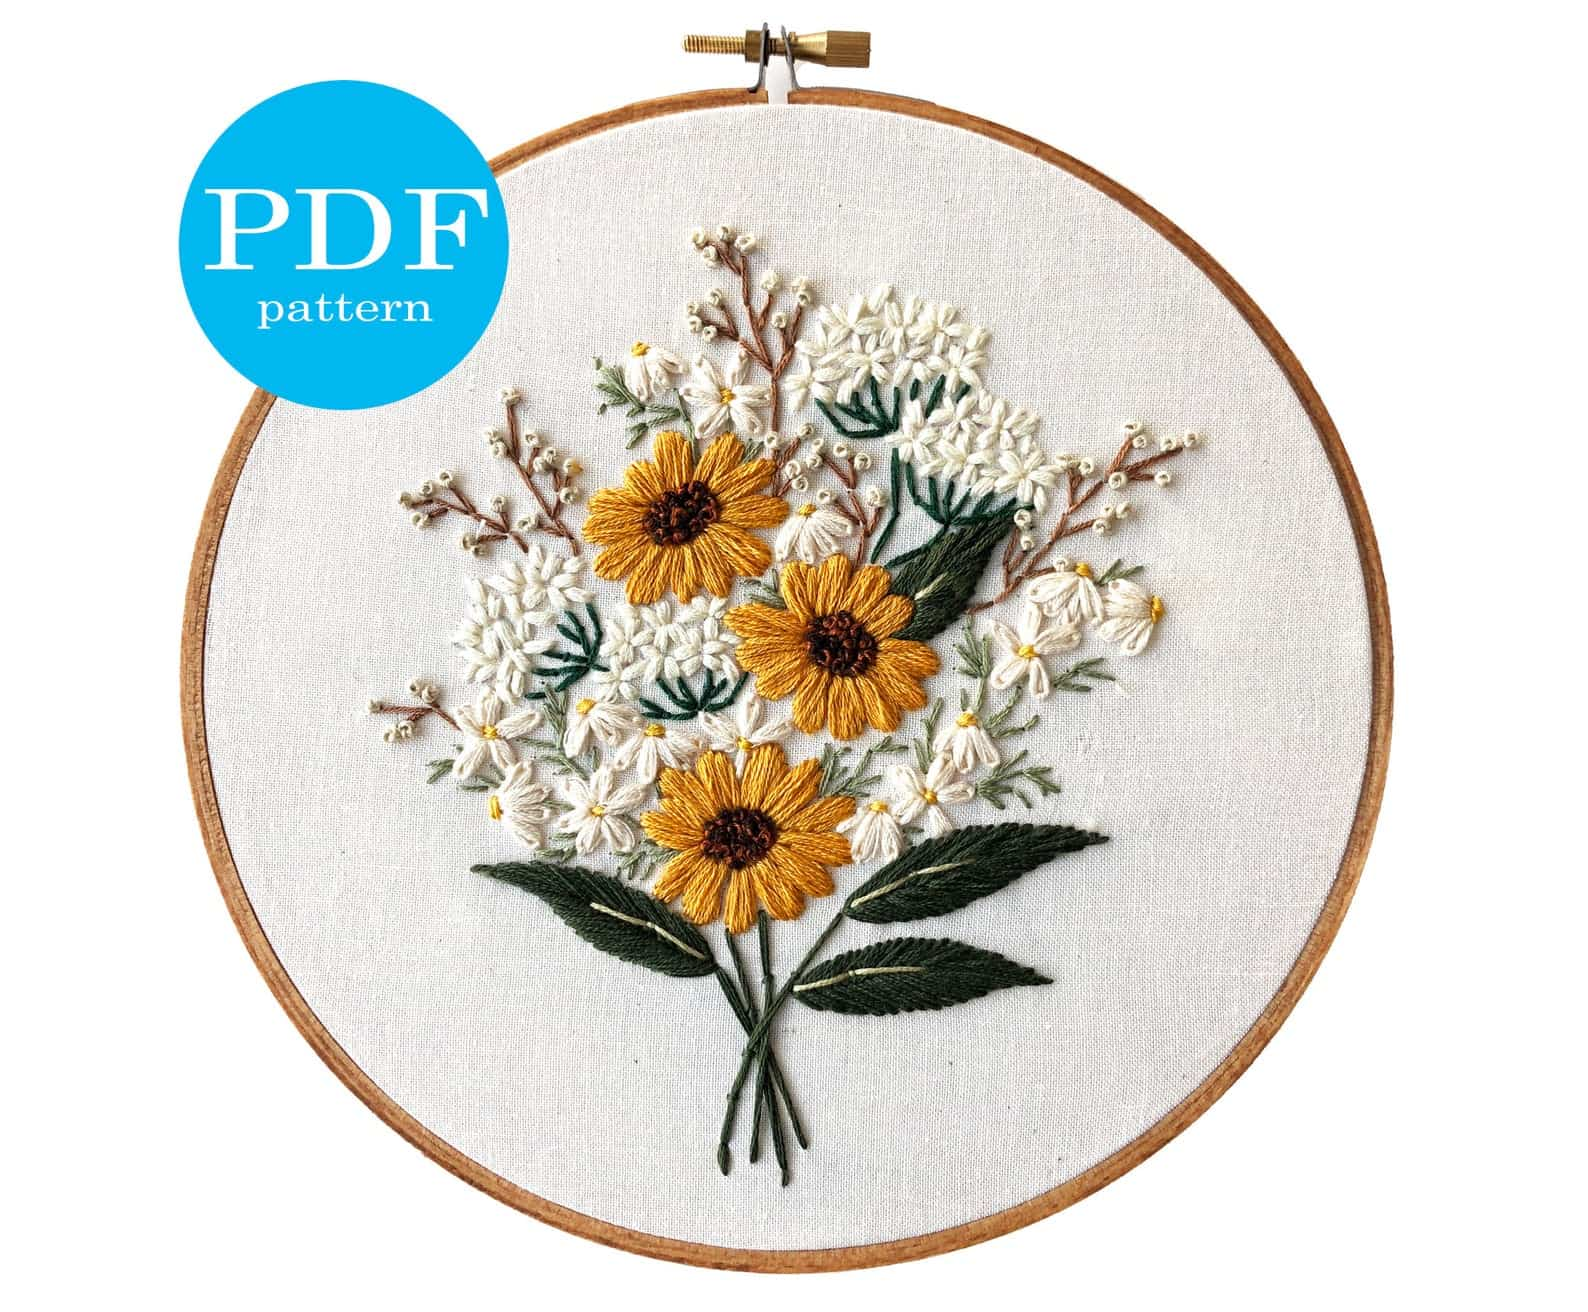 Embroidery pattern with wild flower bouquets